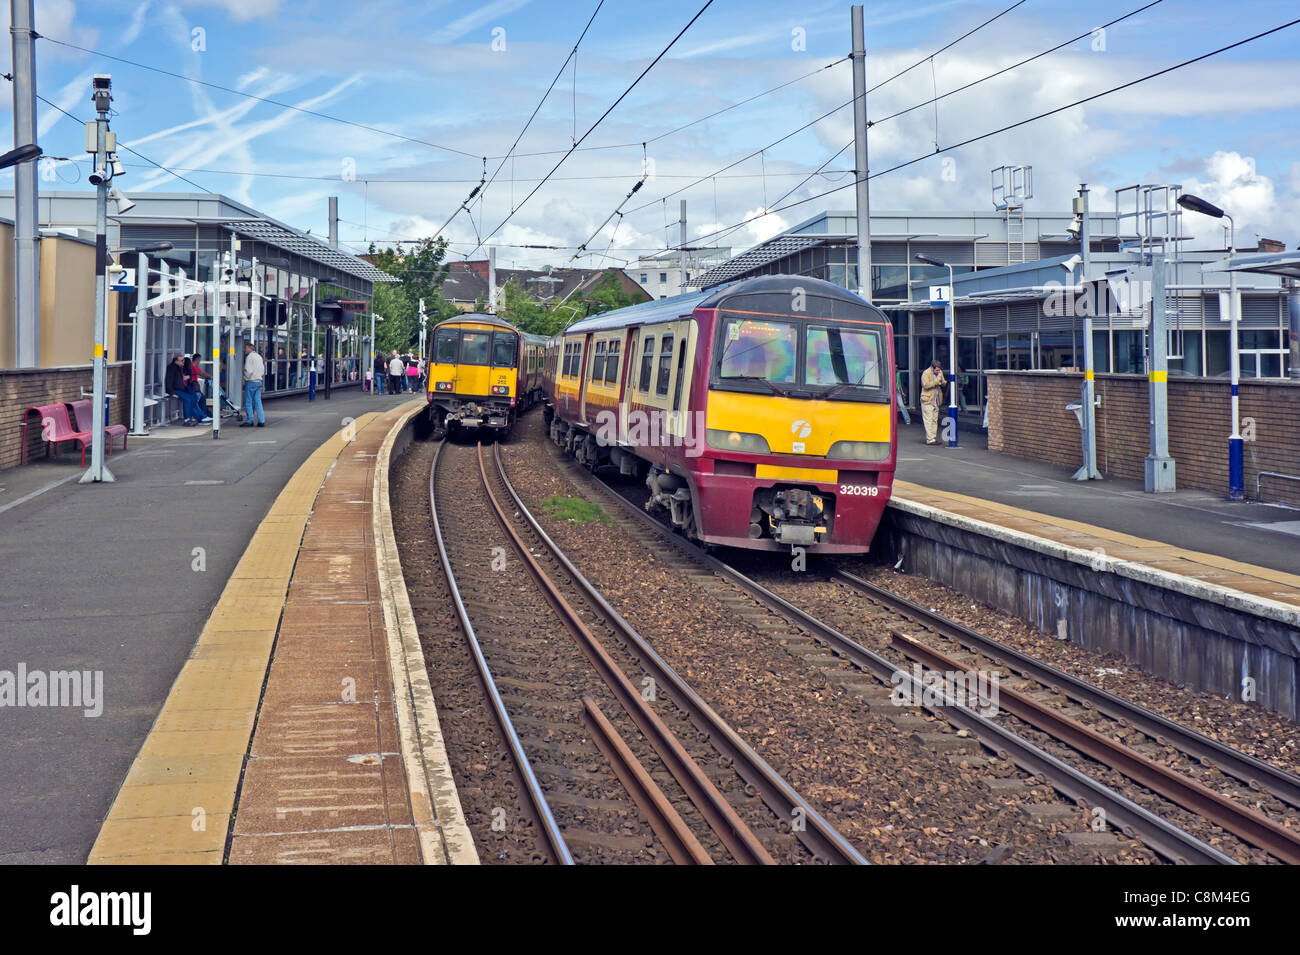 Scotrail EMU units Class 318 westbound (left) and 320 eastbound (right) passing at Partick Railway station in Glasgow - Stock Image